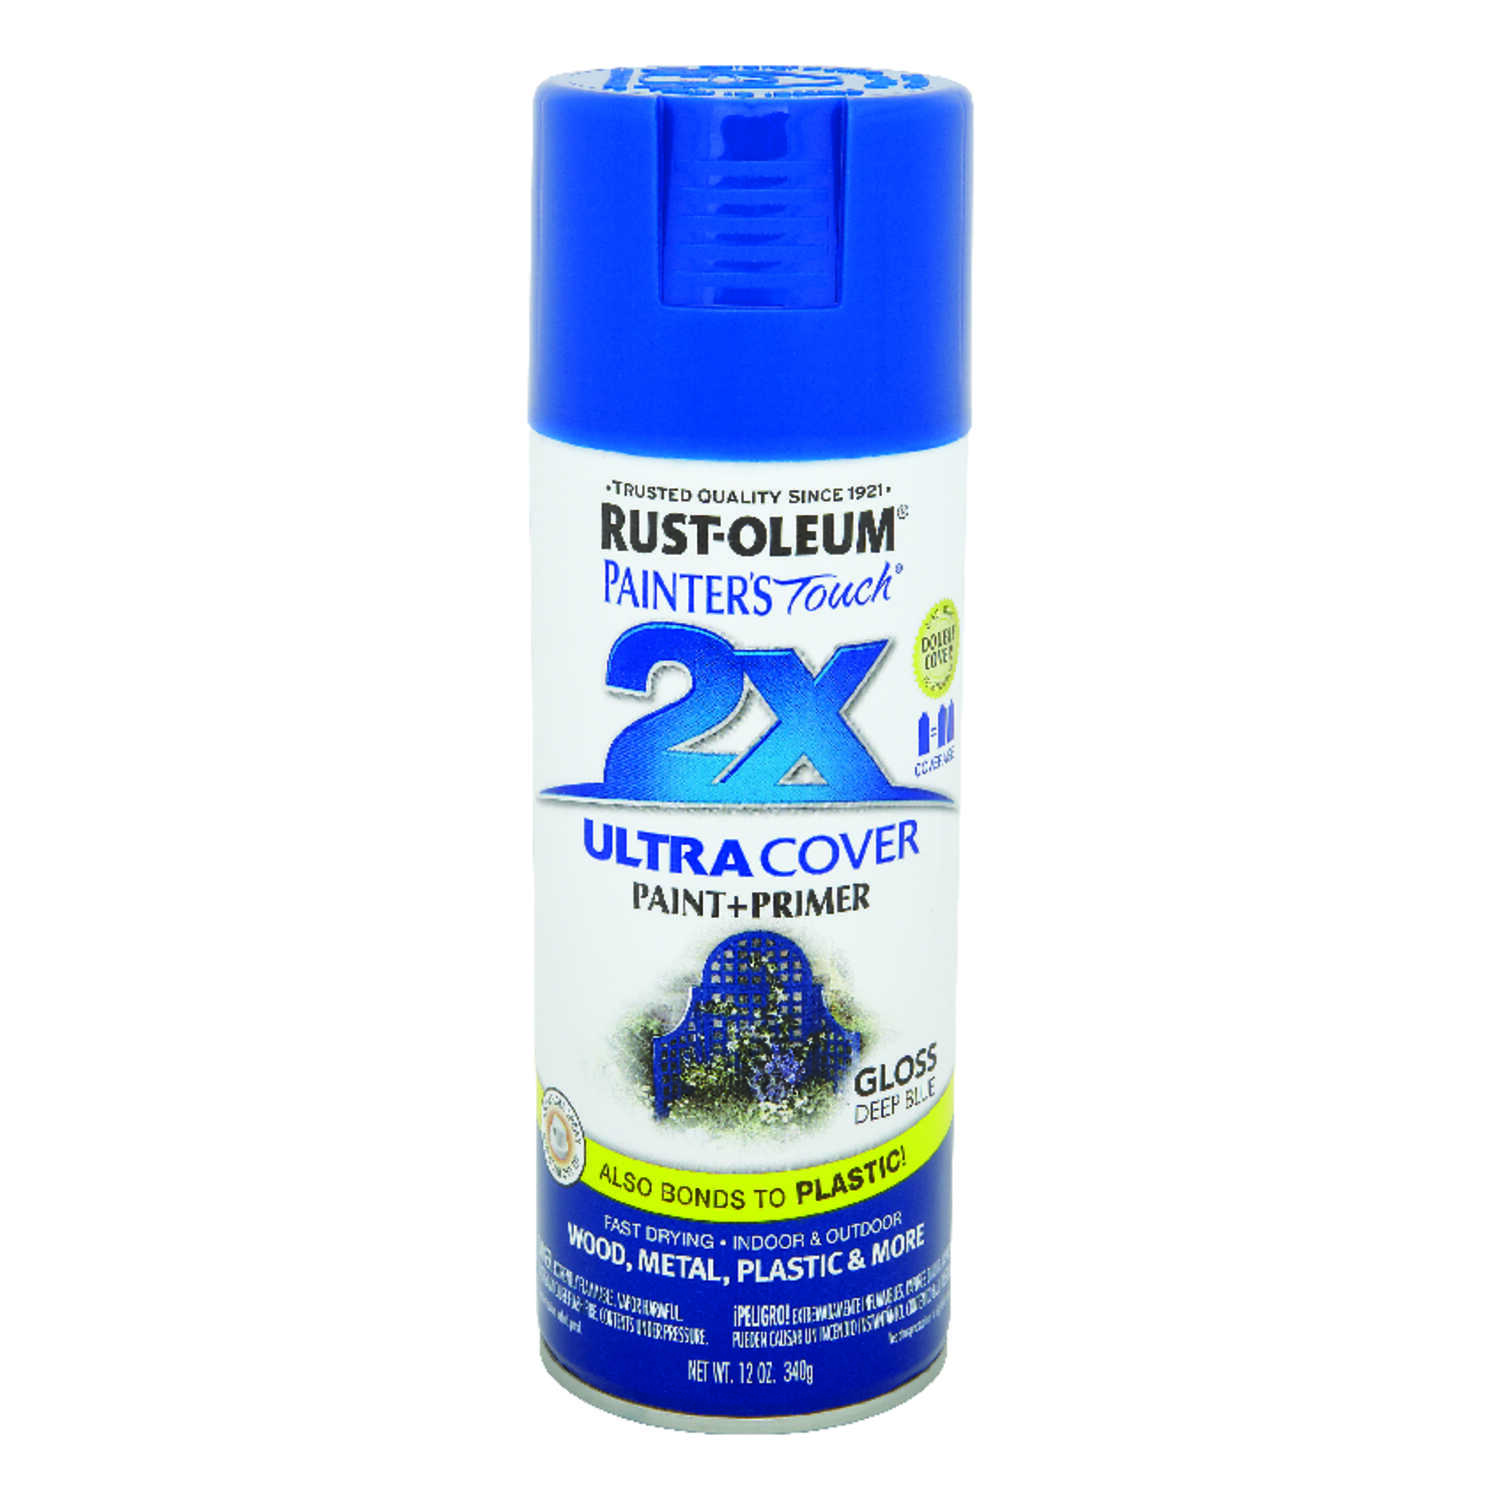 Rust-Oleum  Painter's Touch Ultra Cover  Gloss  Deep Blue  Spray Paint  12 oz.